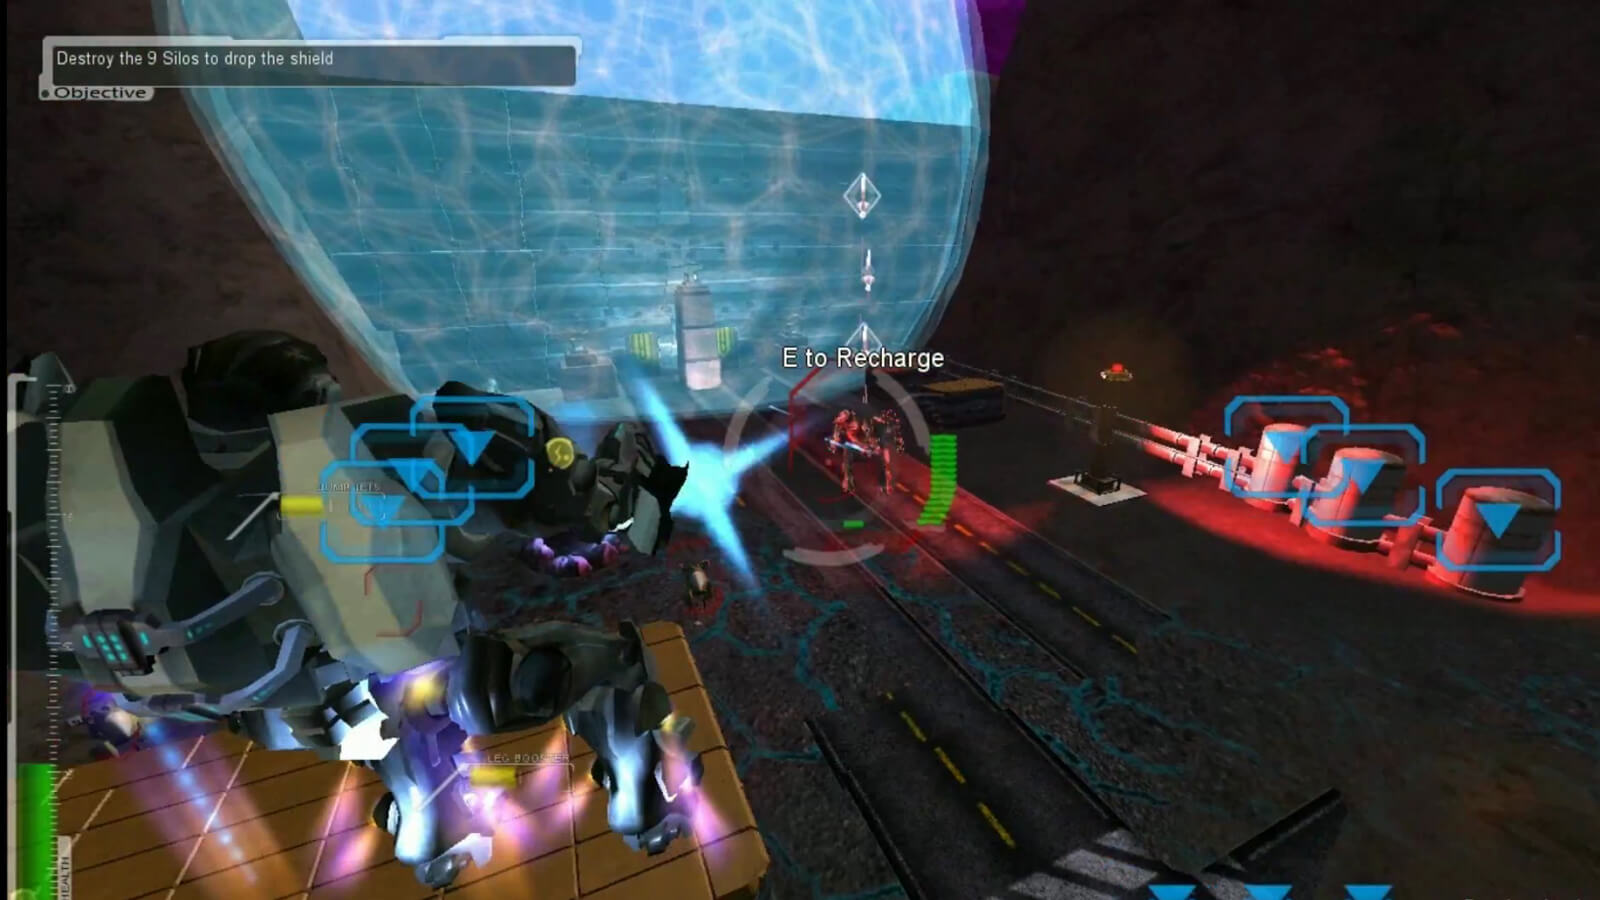 A mech suit hovers above an enemy in the distance lining up a shot. A blue shield blocks the path forward.